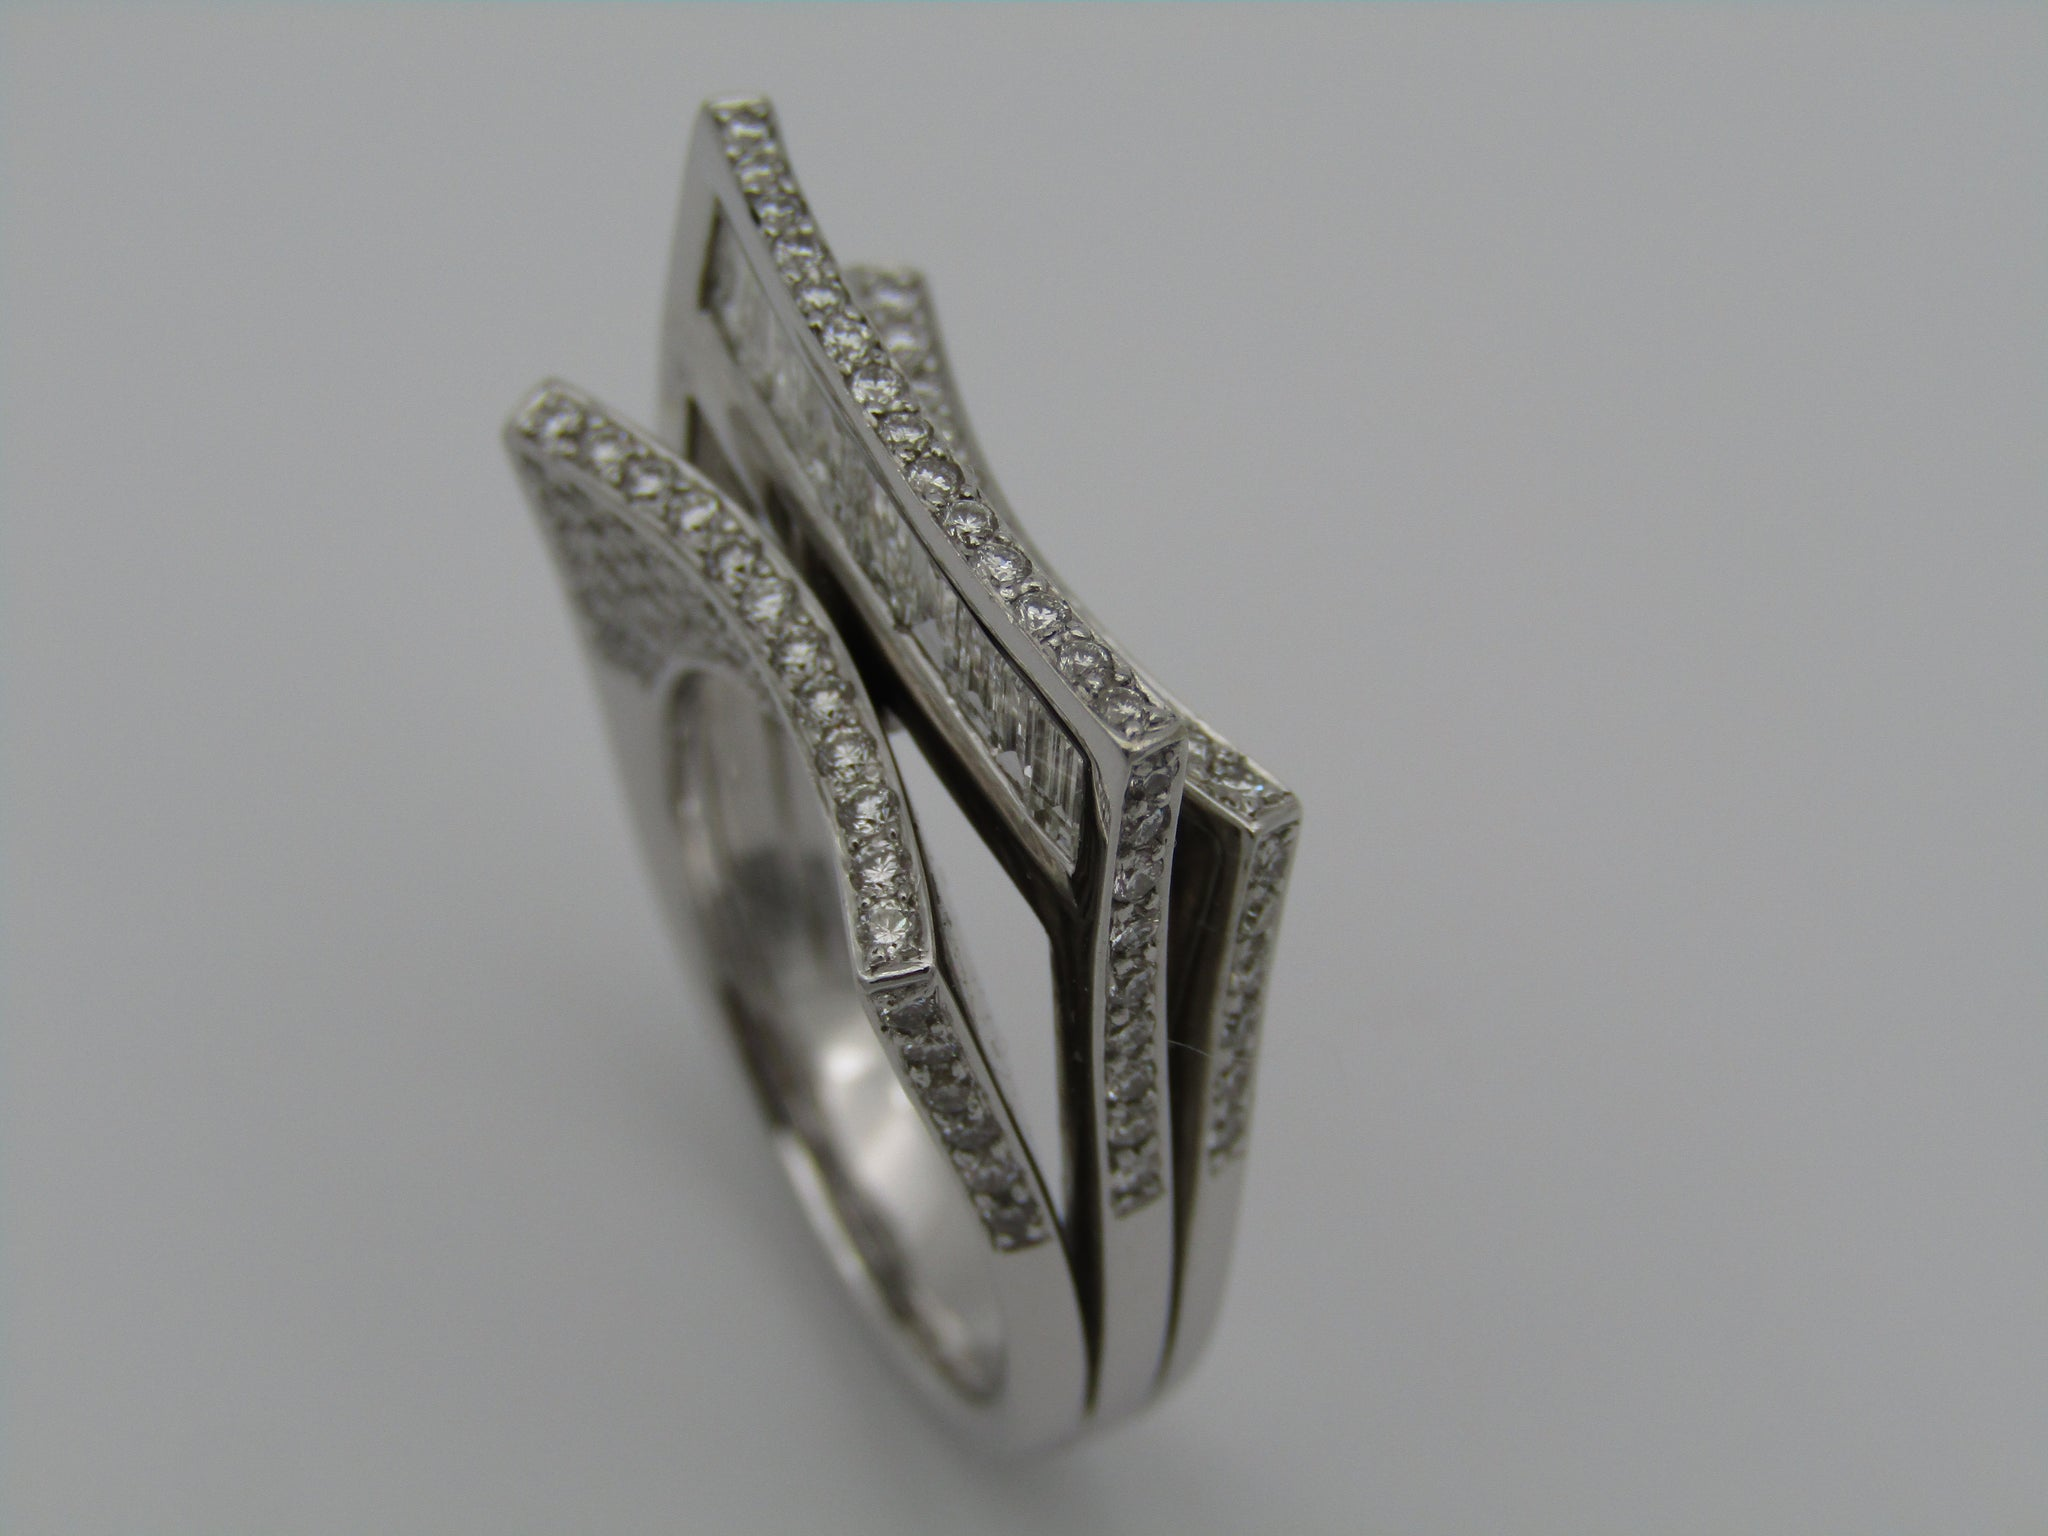 18kt white gold diamond ring featuring exquisite design and craftsmanship!